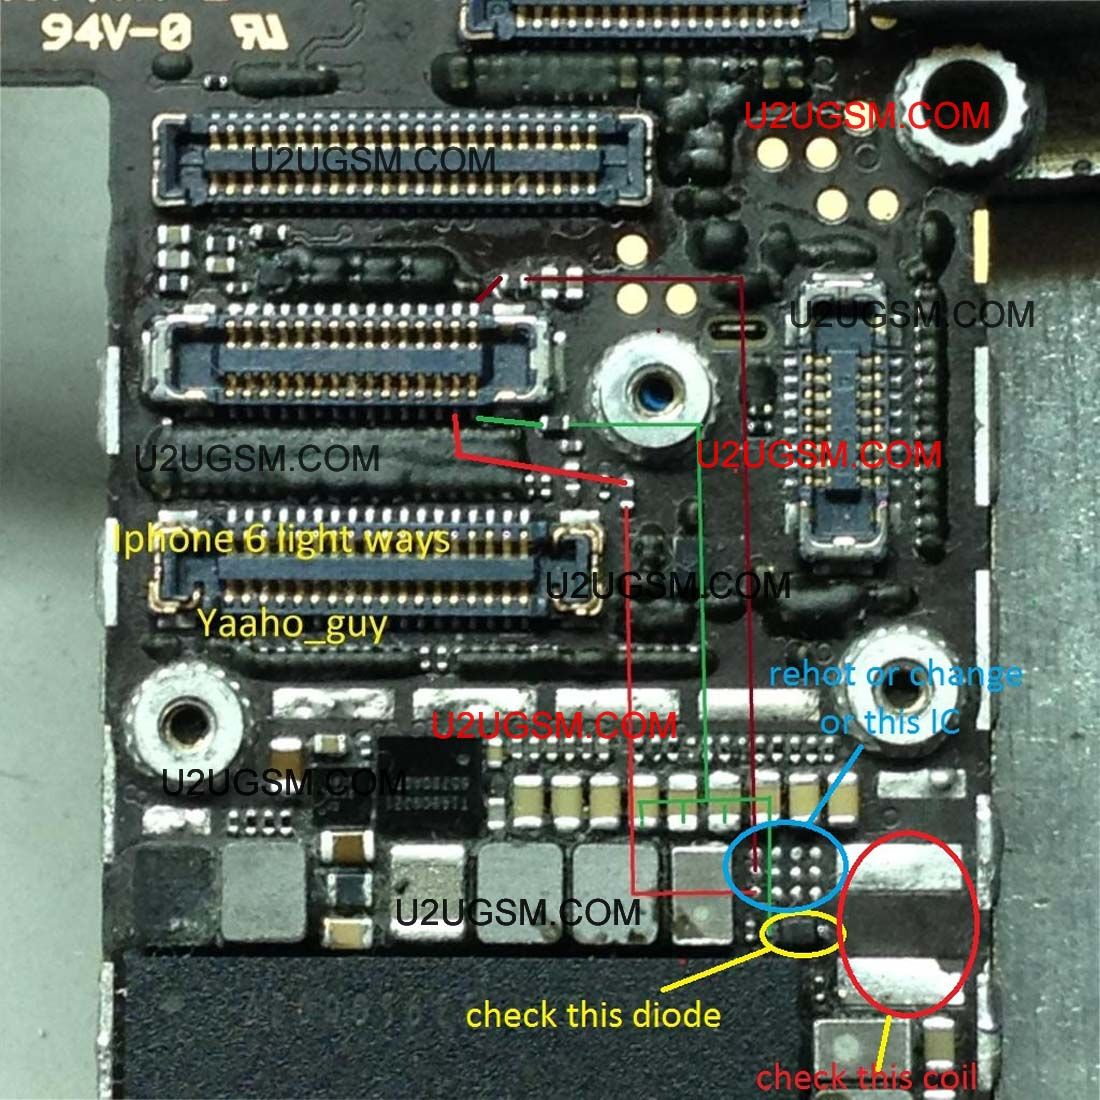 hight resolution of iphone 6 lcd display light ic solution jumper problem ways